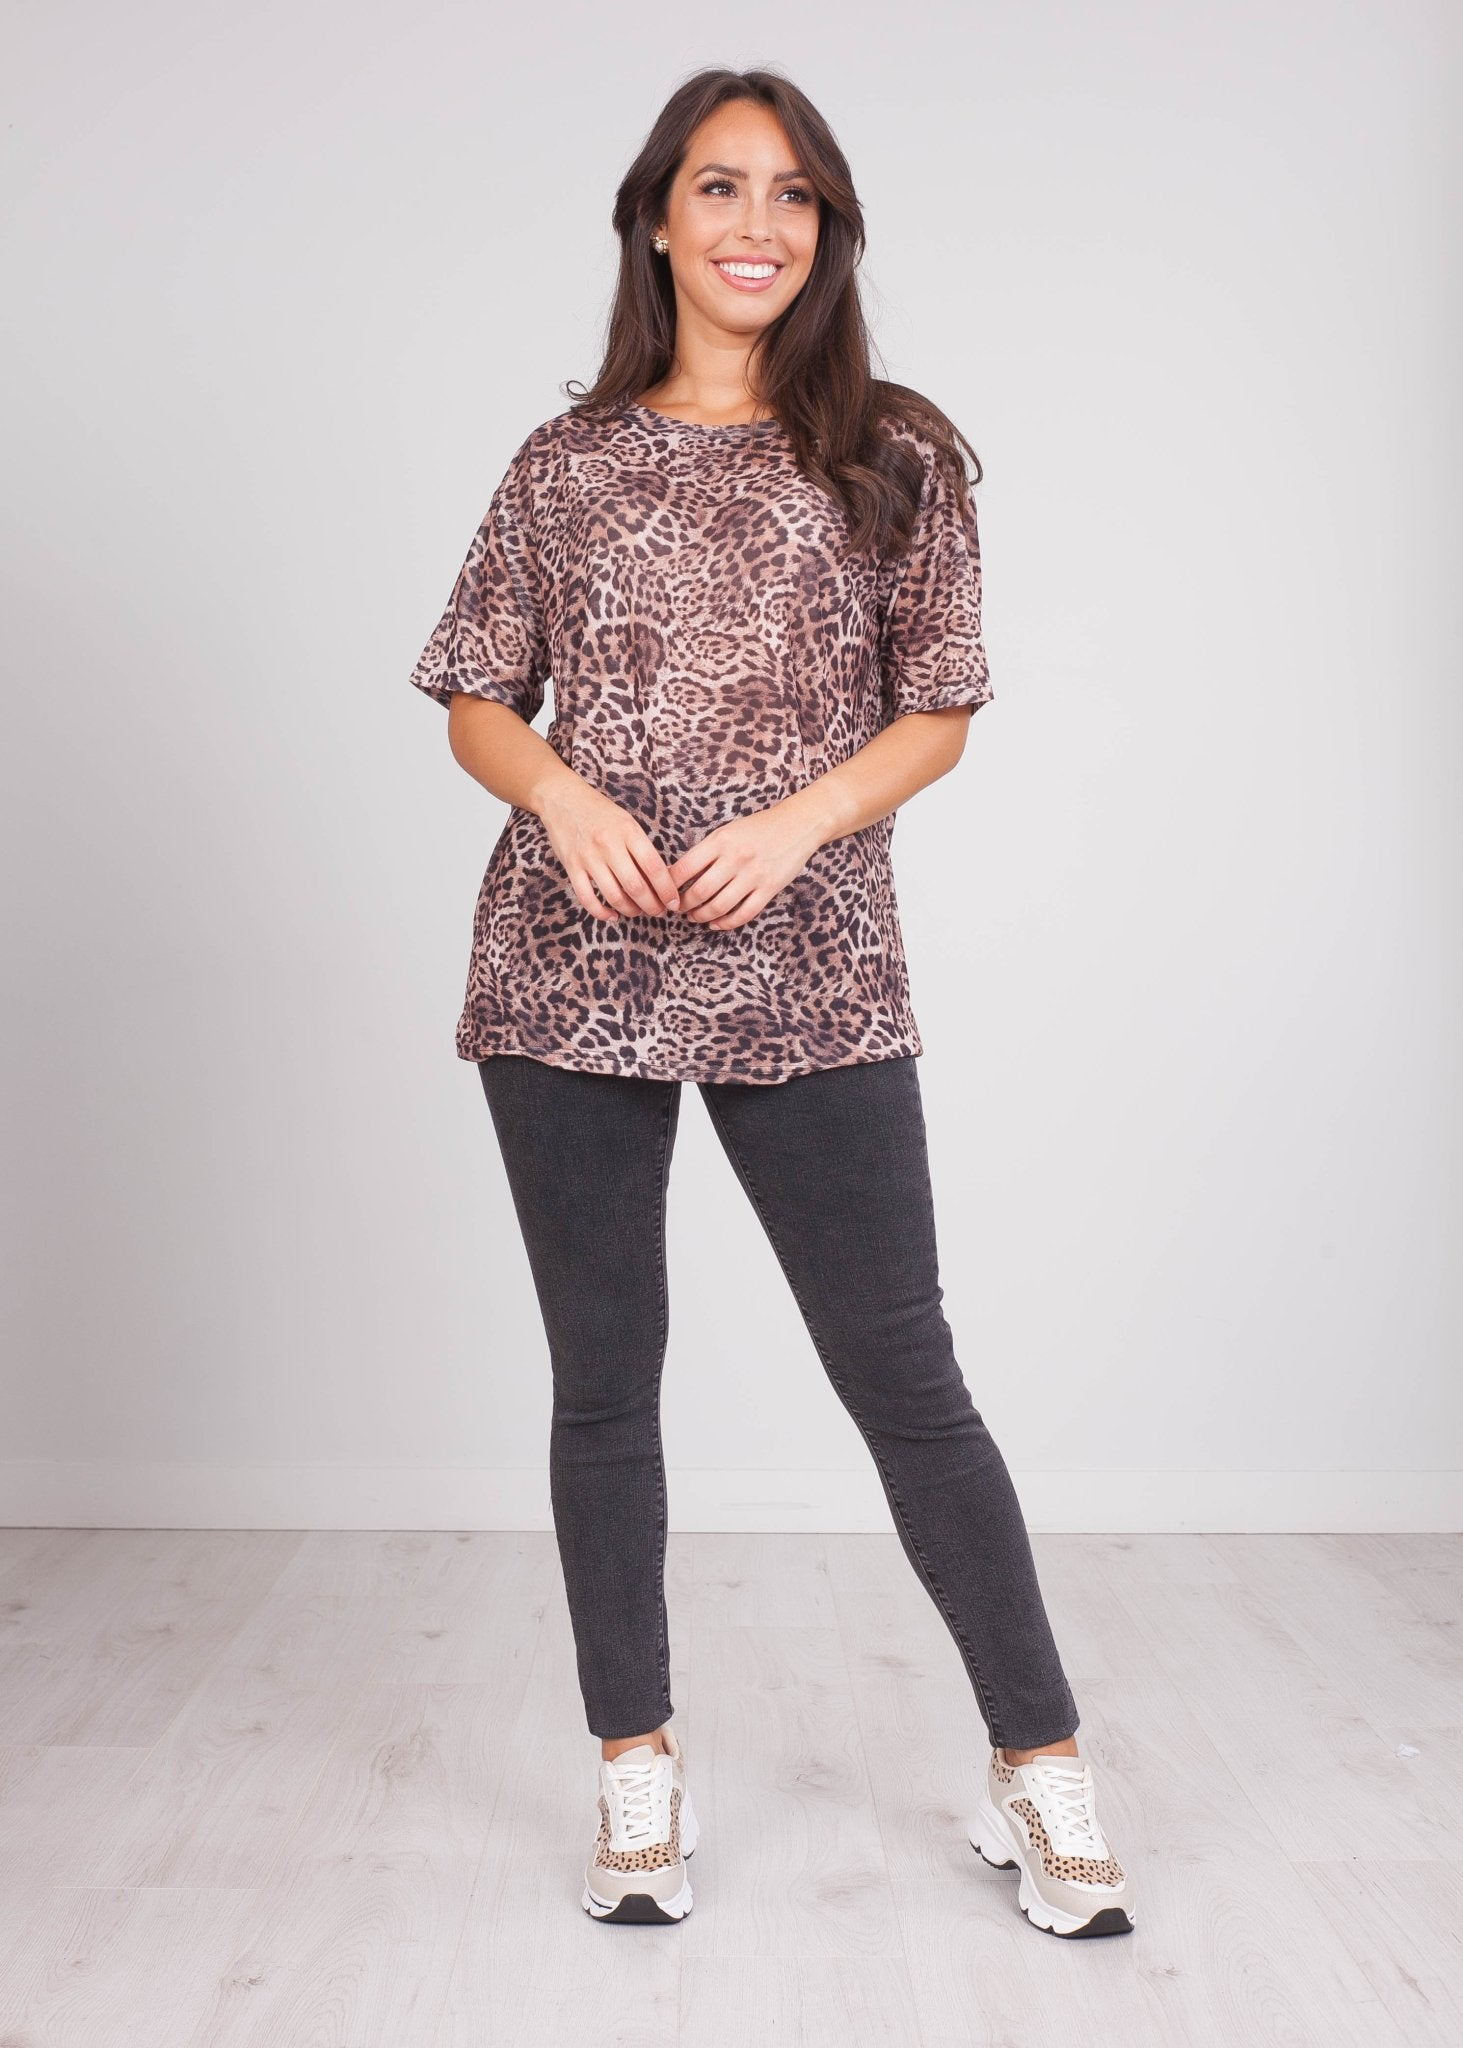 Sissy Leopard Print T-Shirt - The Walk in Wardrobe